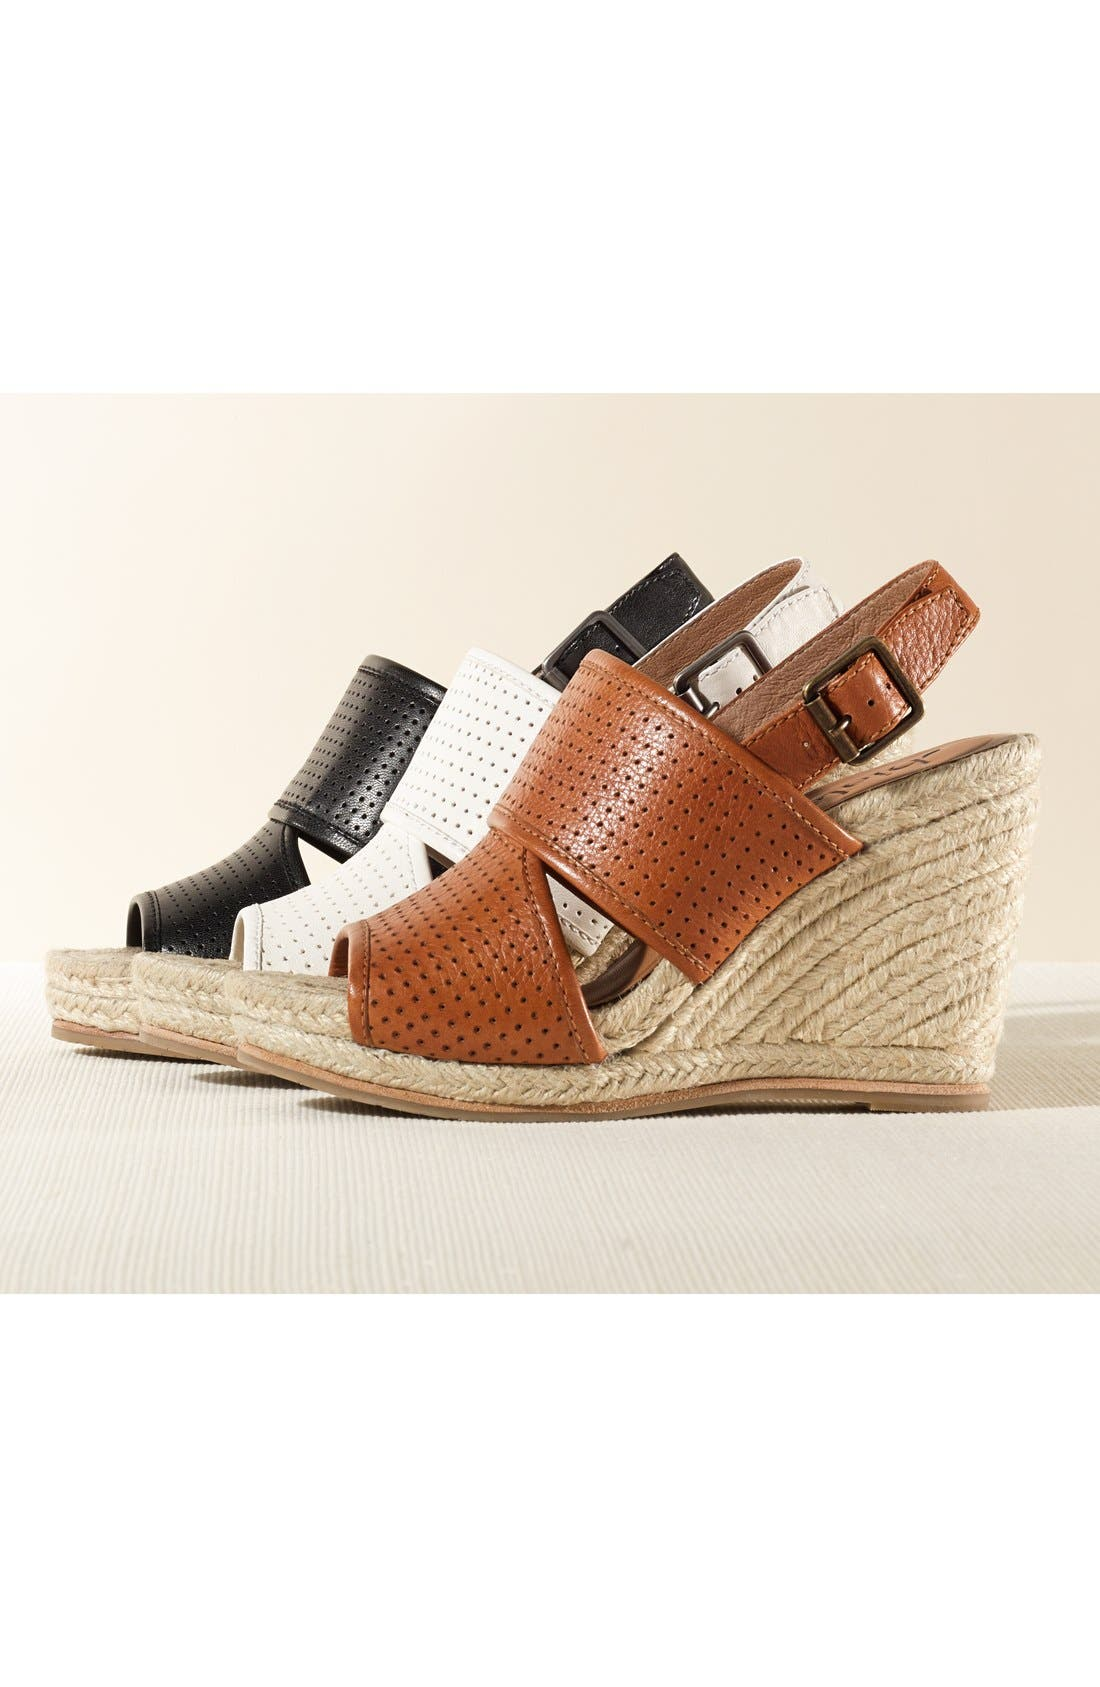 'Joyce' Perforated Espadrille Wedge Sandal,                             Alternate thumbnail 5, color,                             001